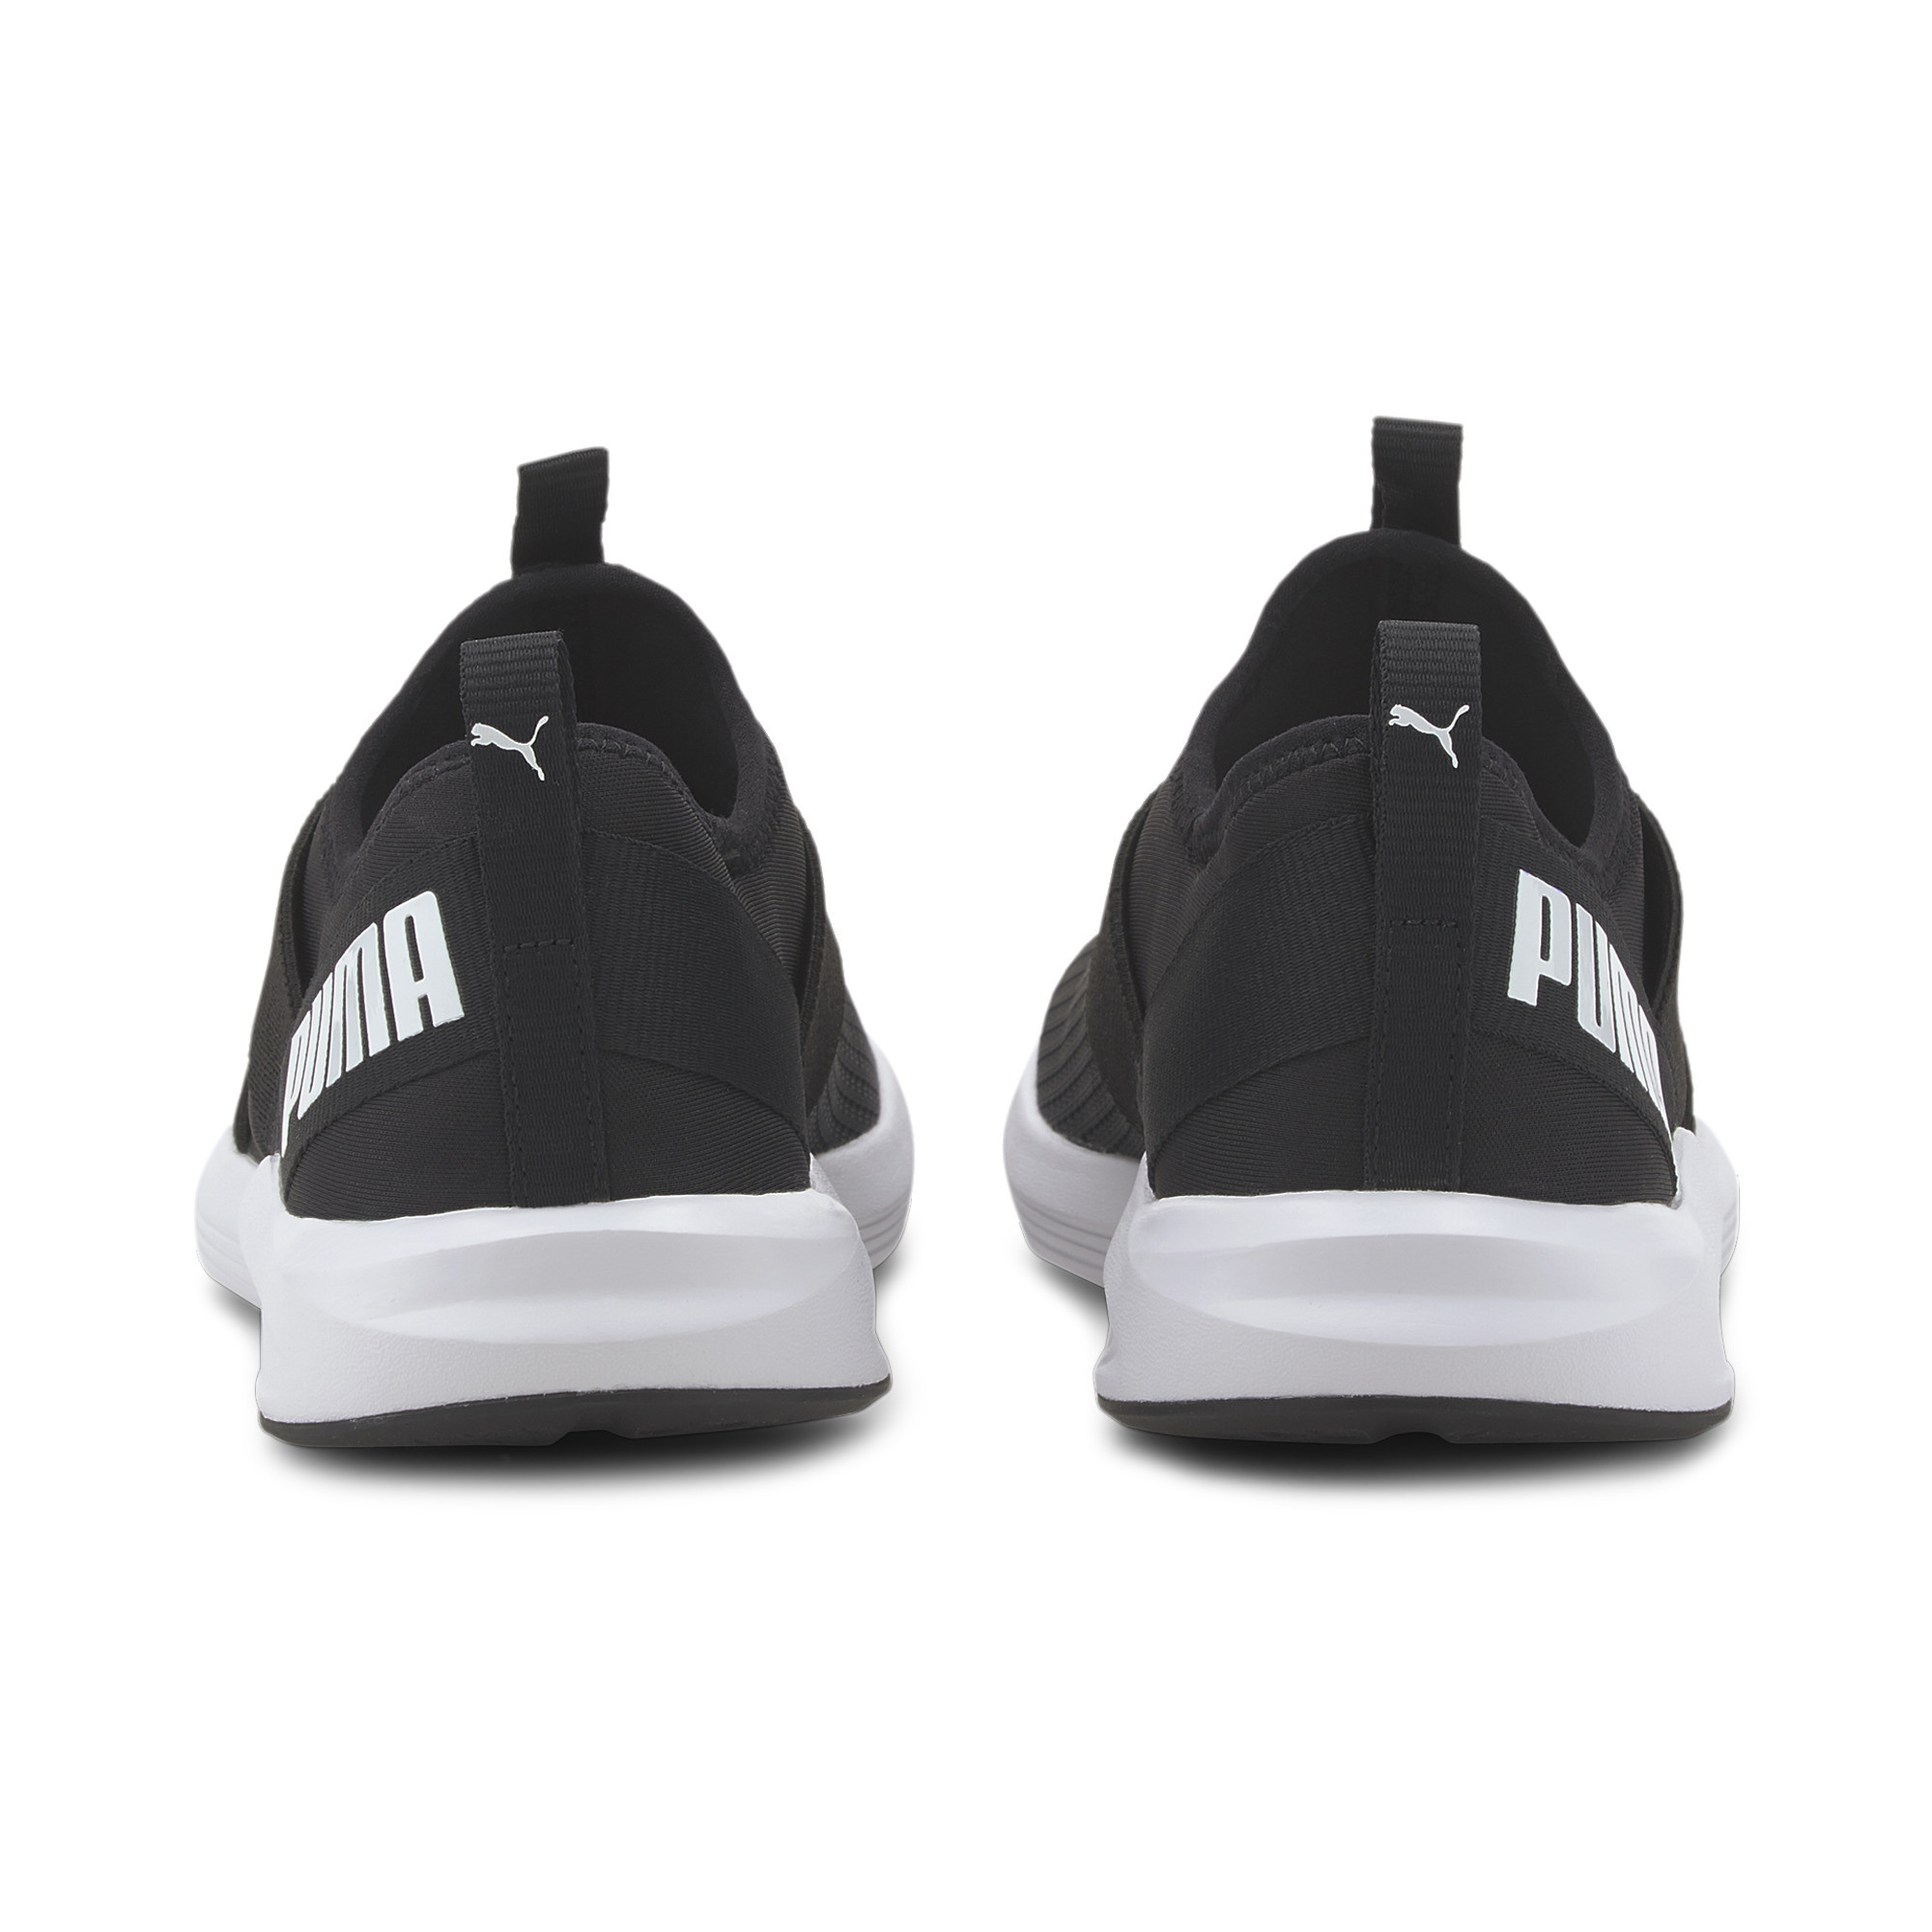 PUMA-Women-039-s-Prowl-Slip-On-Training-Shoes thumbnail 17